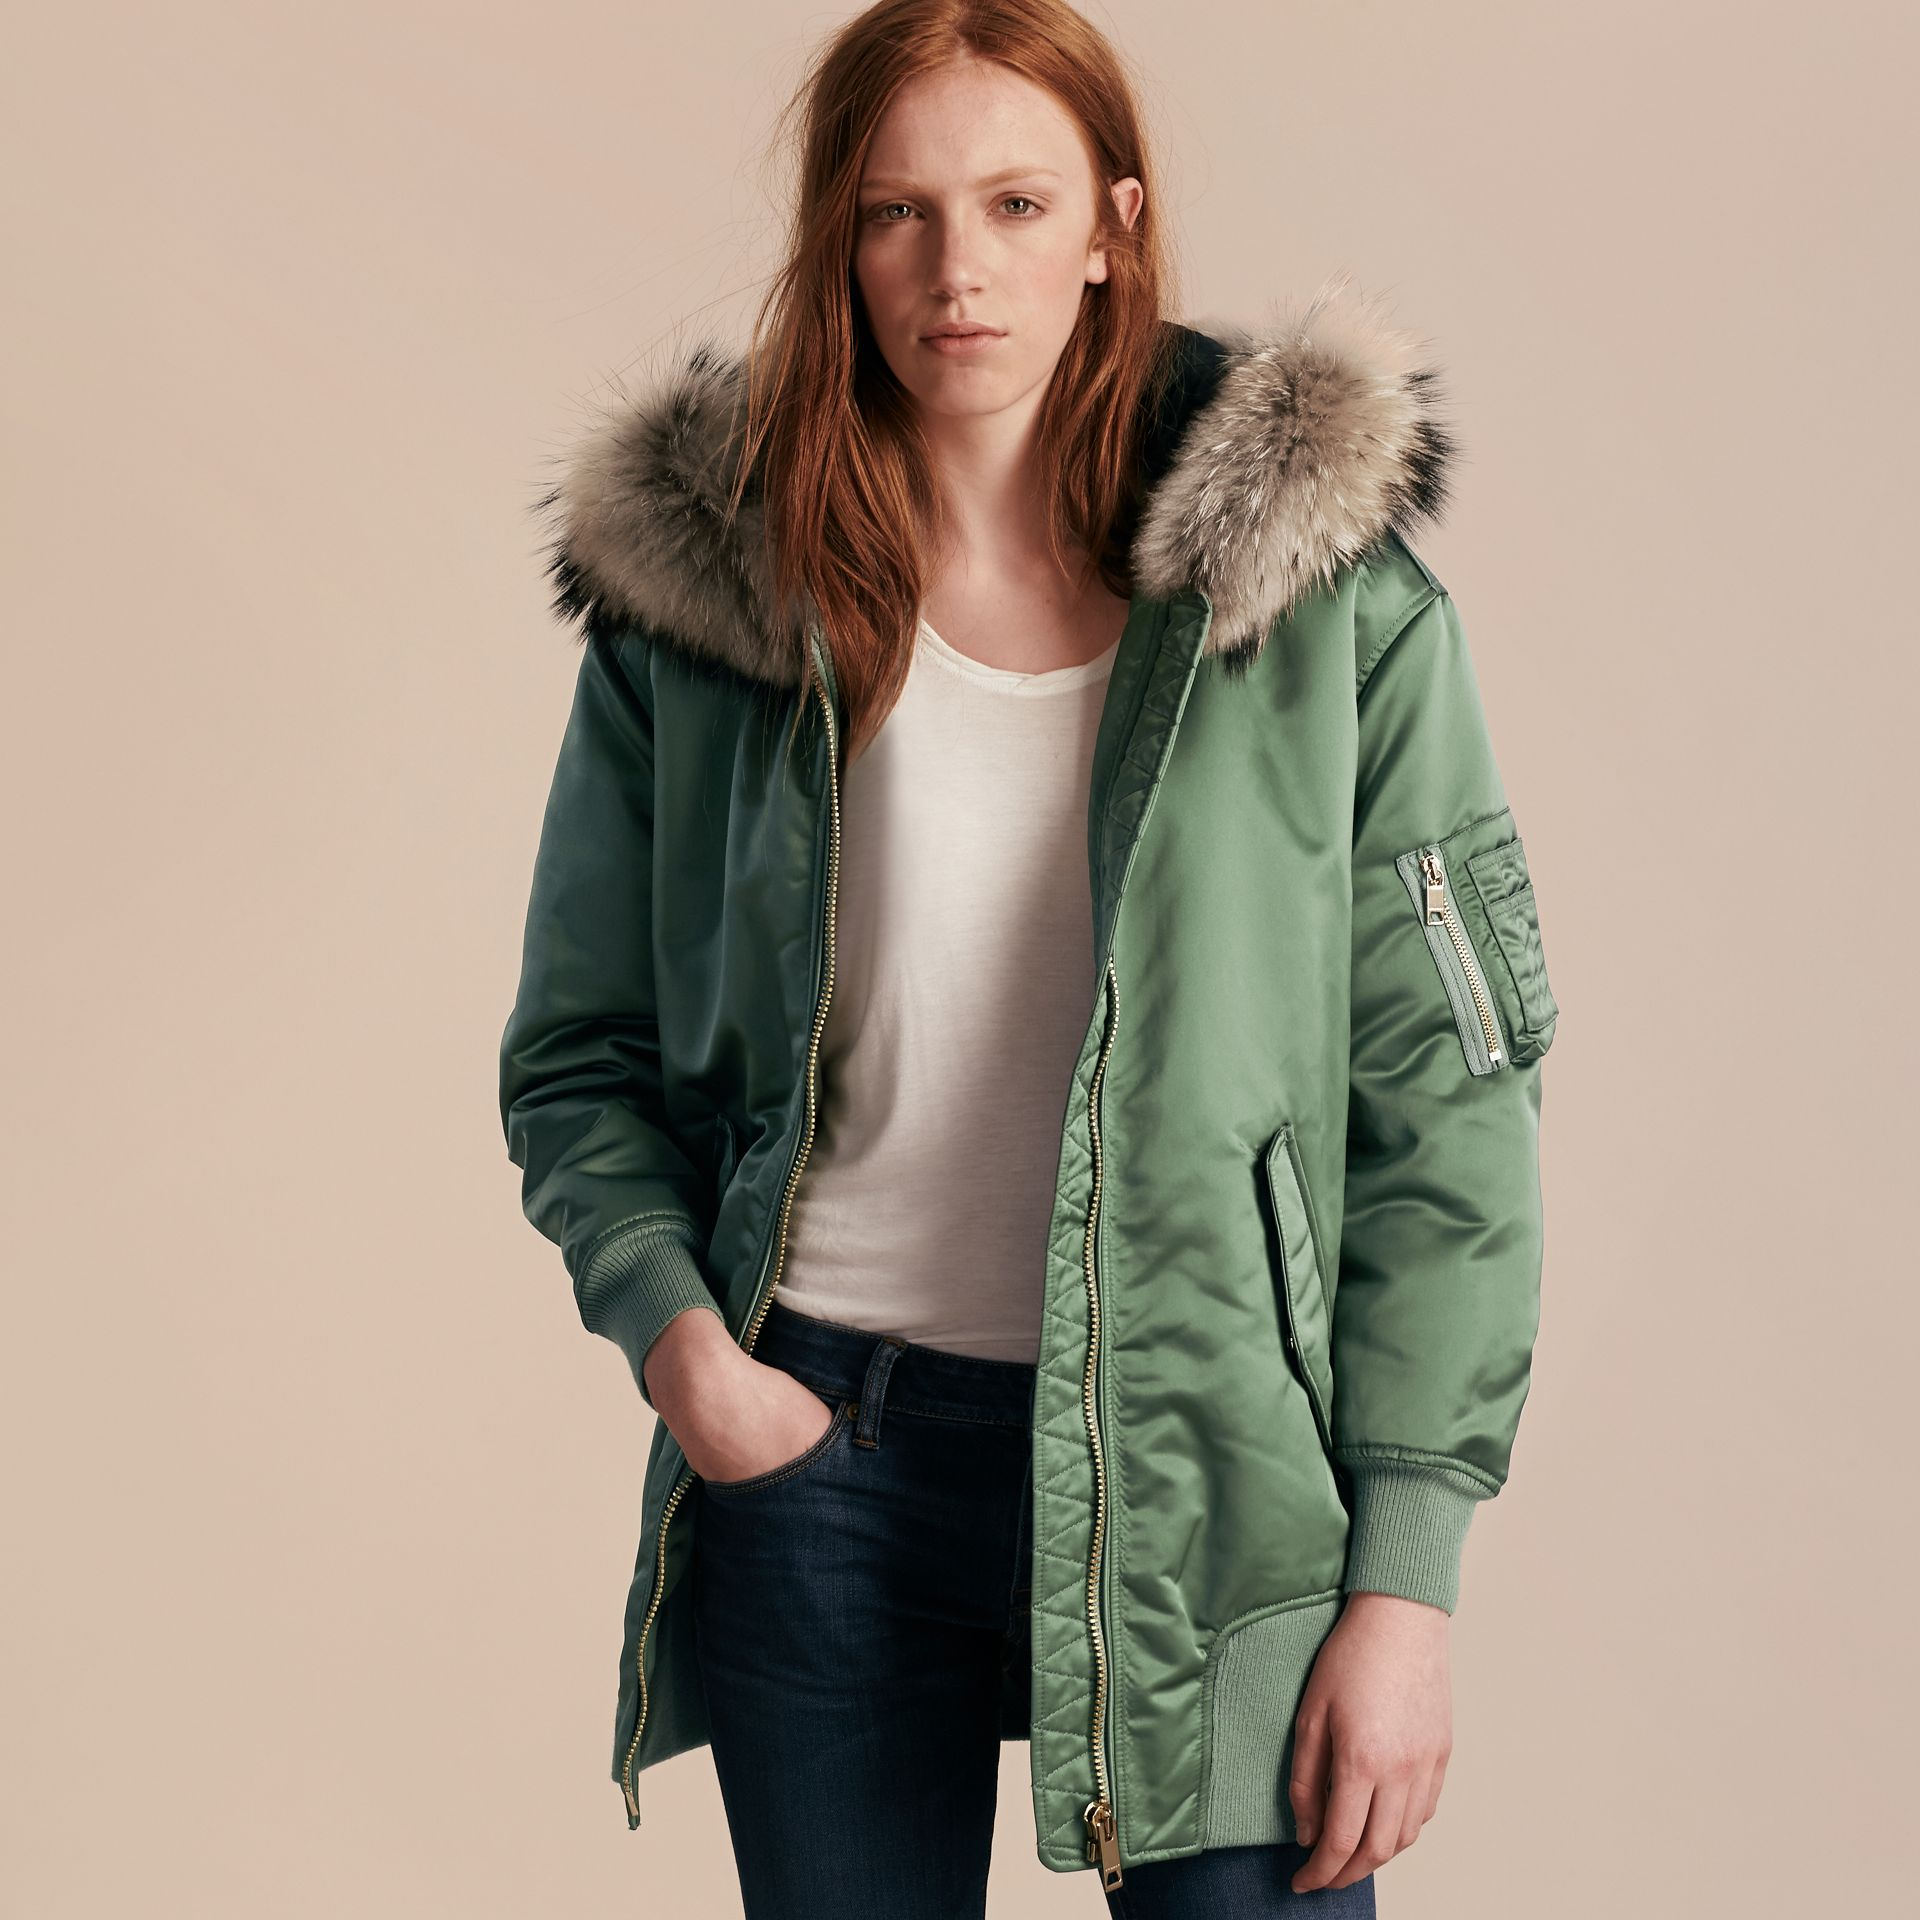 Eucalyptus green Long-line Satin Bomber Jacket with Fur-trimmed Hood Eucalyptus Green - gallery image 6